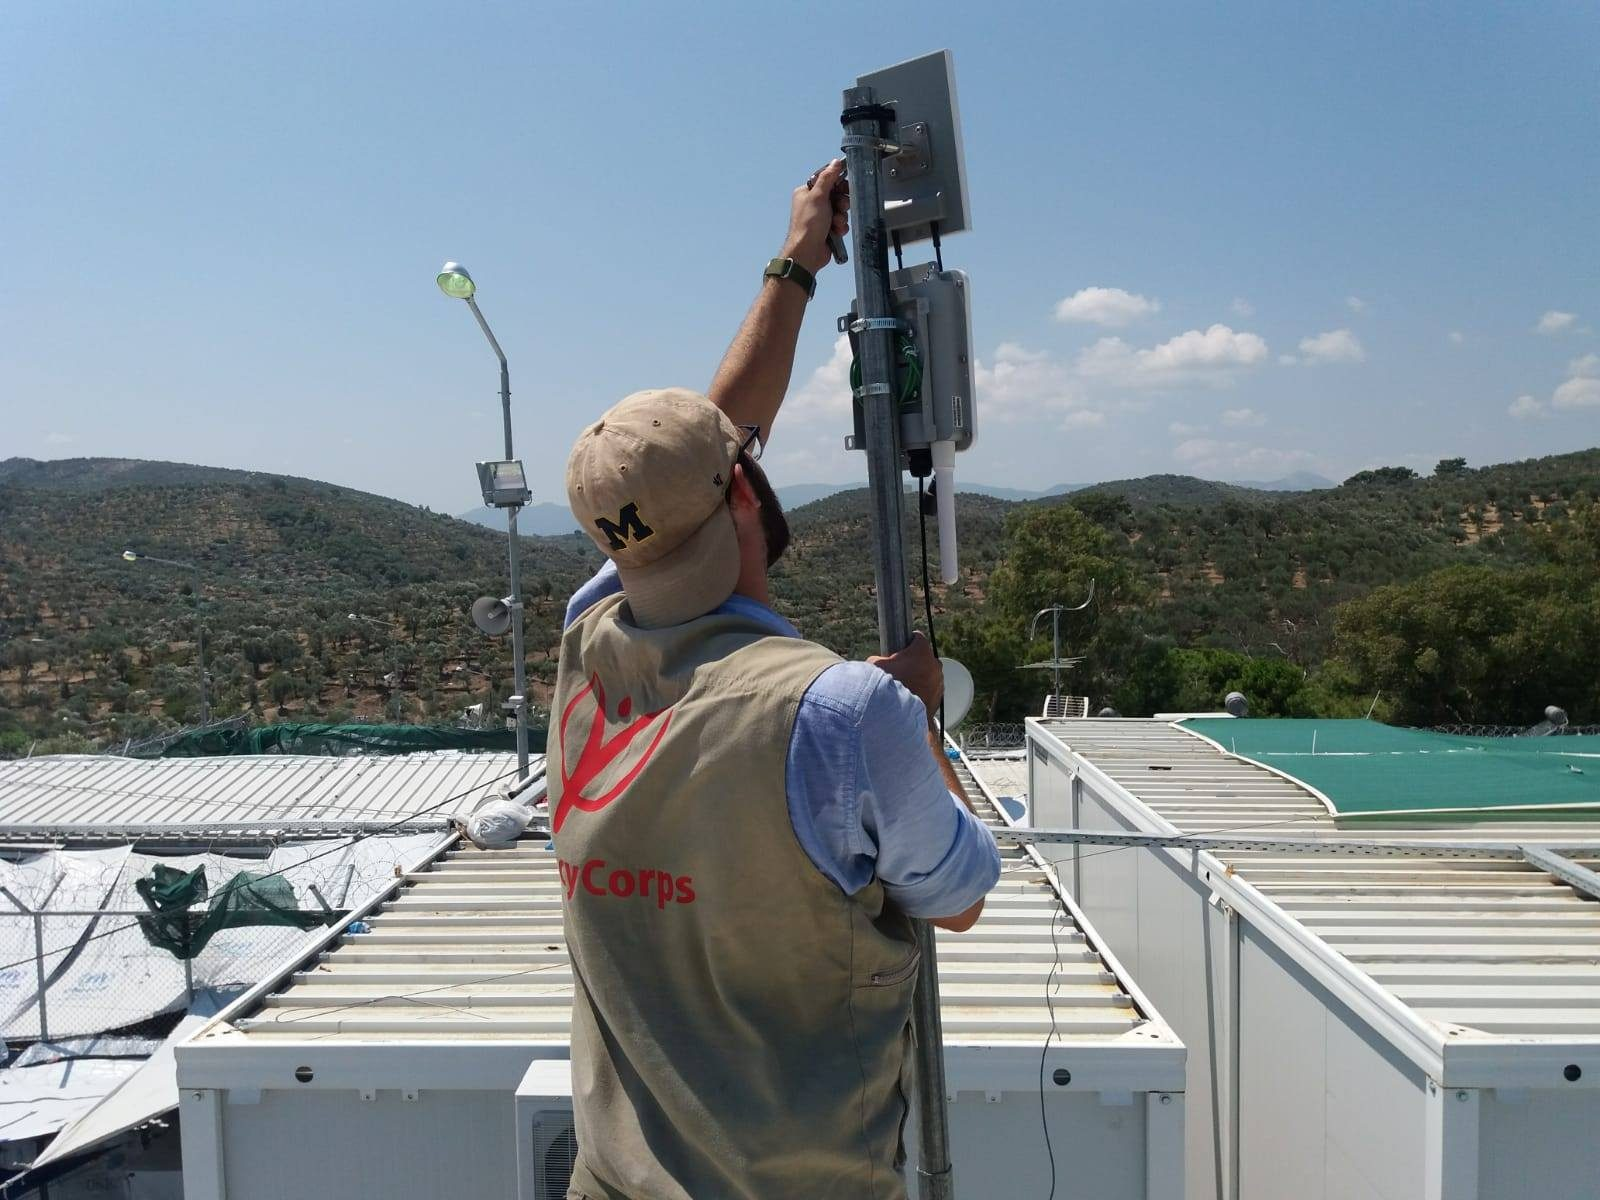 John Traylor bolts down new wireless access points for portions of camp Moria, Greece (photo by Robert Claro).